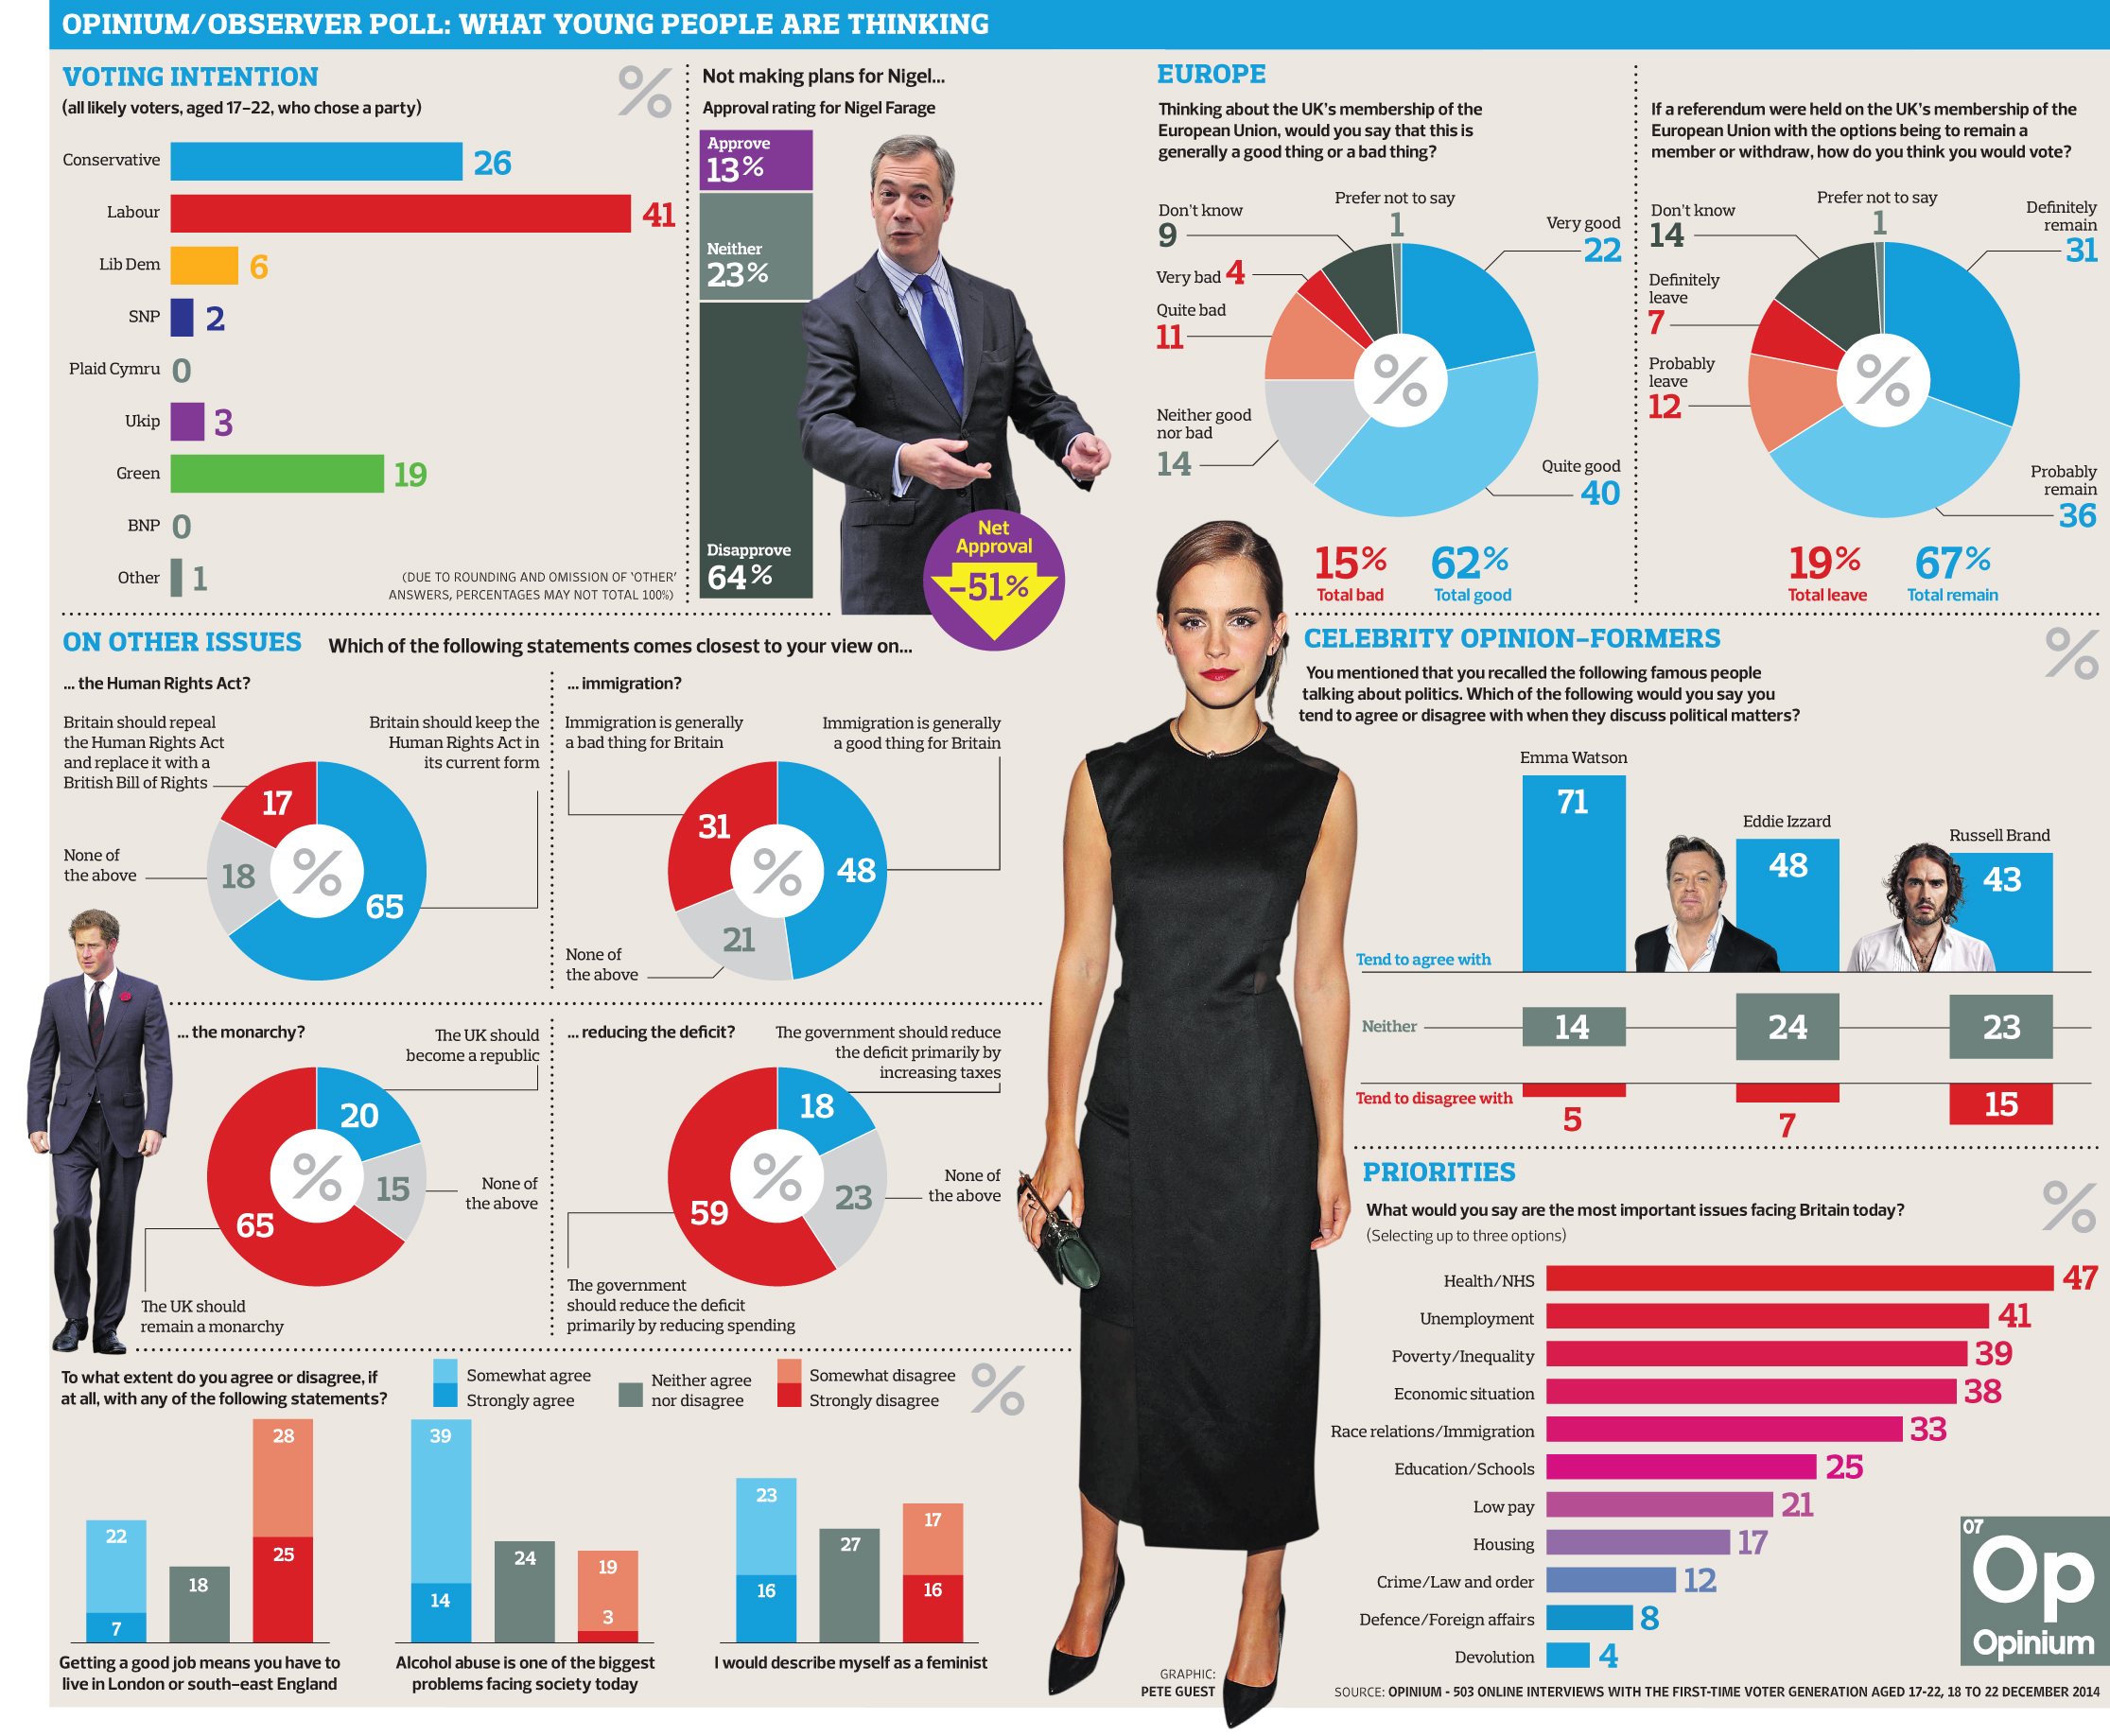 (SOURCE: http://static.guim.co.uk/sys-images/Guardian/Pix/pictures/2014/12/27/1419714455345/gu_First_time_voters_poll.jpg)